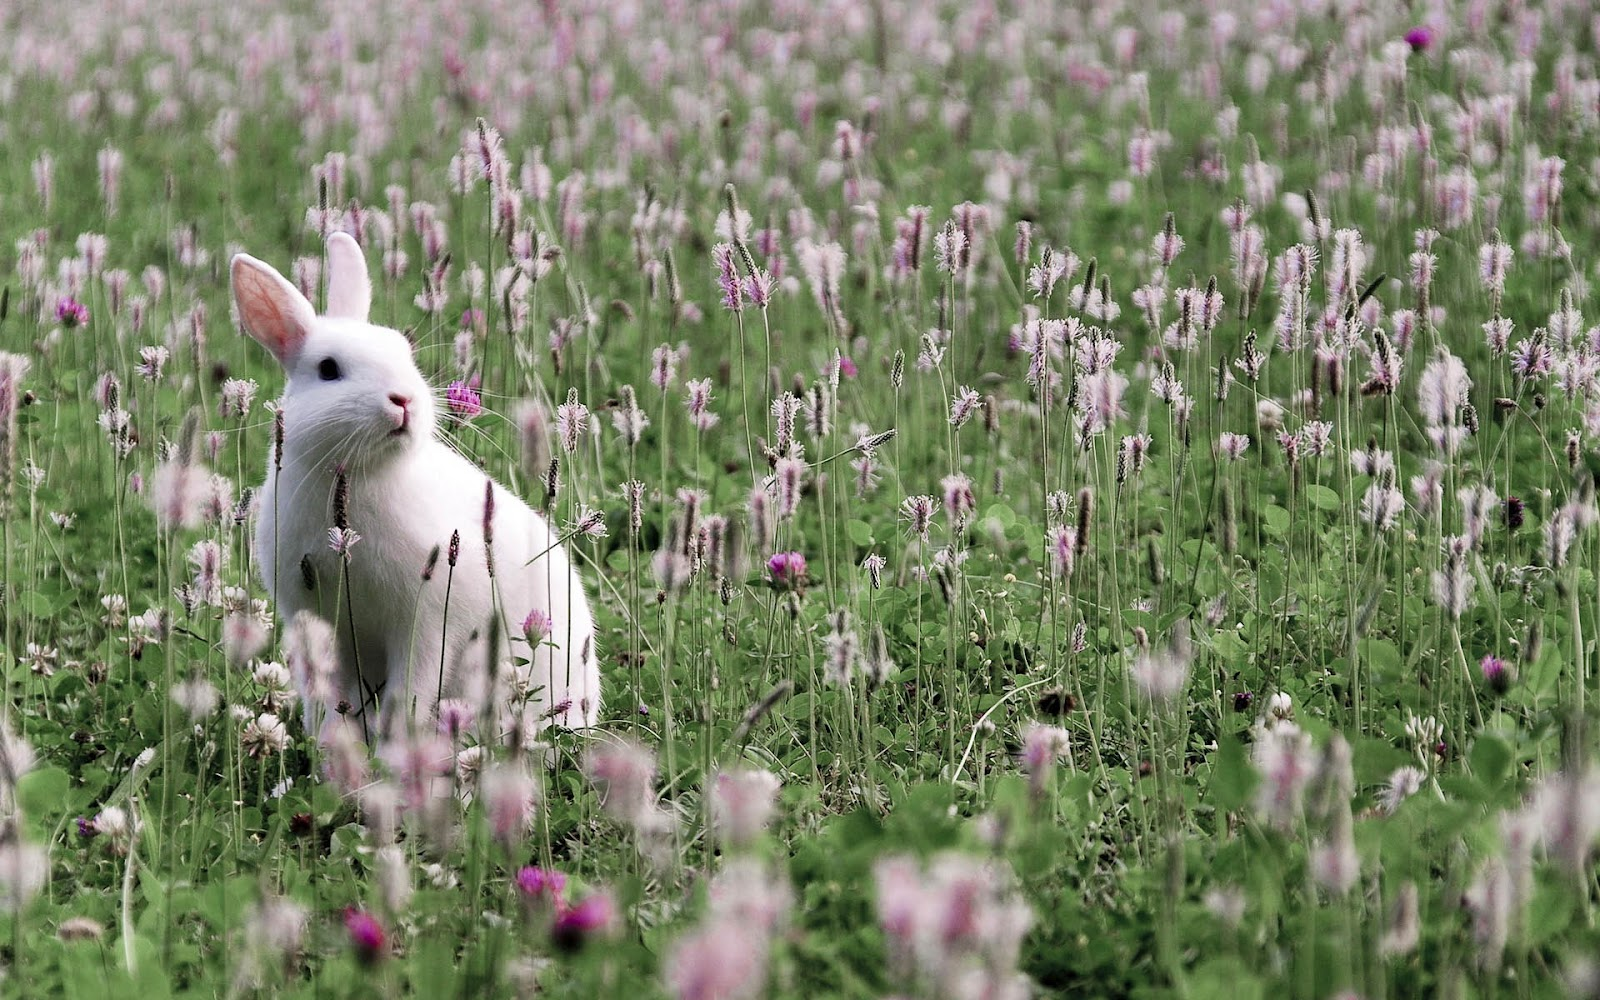 Great   Wallpaper Horse Flower - hd-rabbits-wallpaper-with-a-white-rabbit-and-flowers-and-grass-background-picture  Pictures_74576.jpg